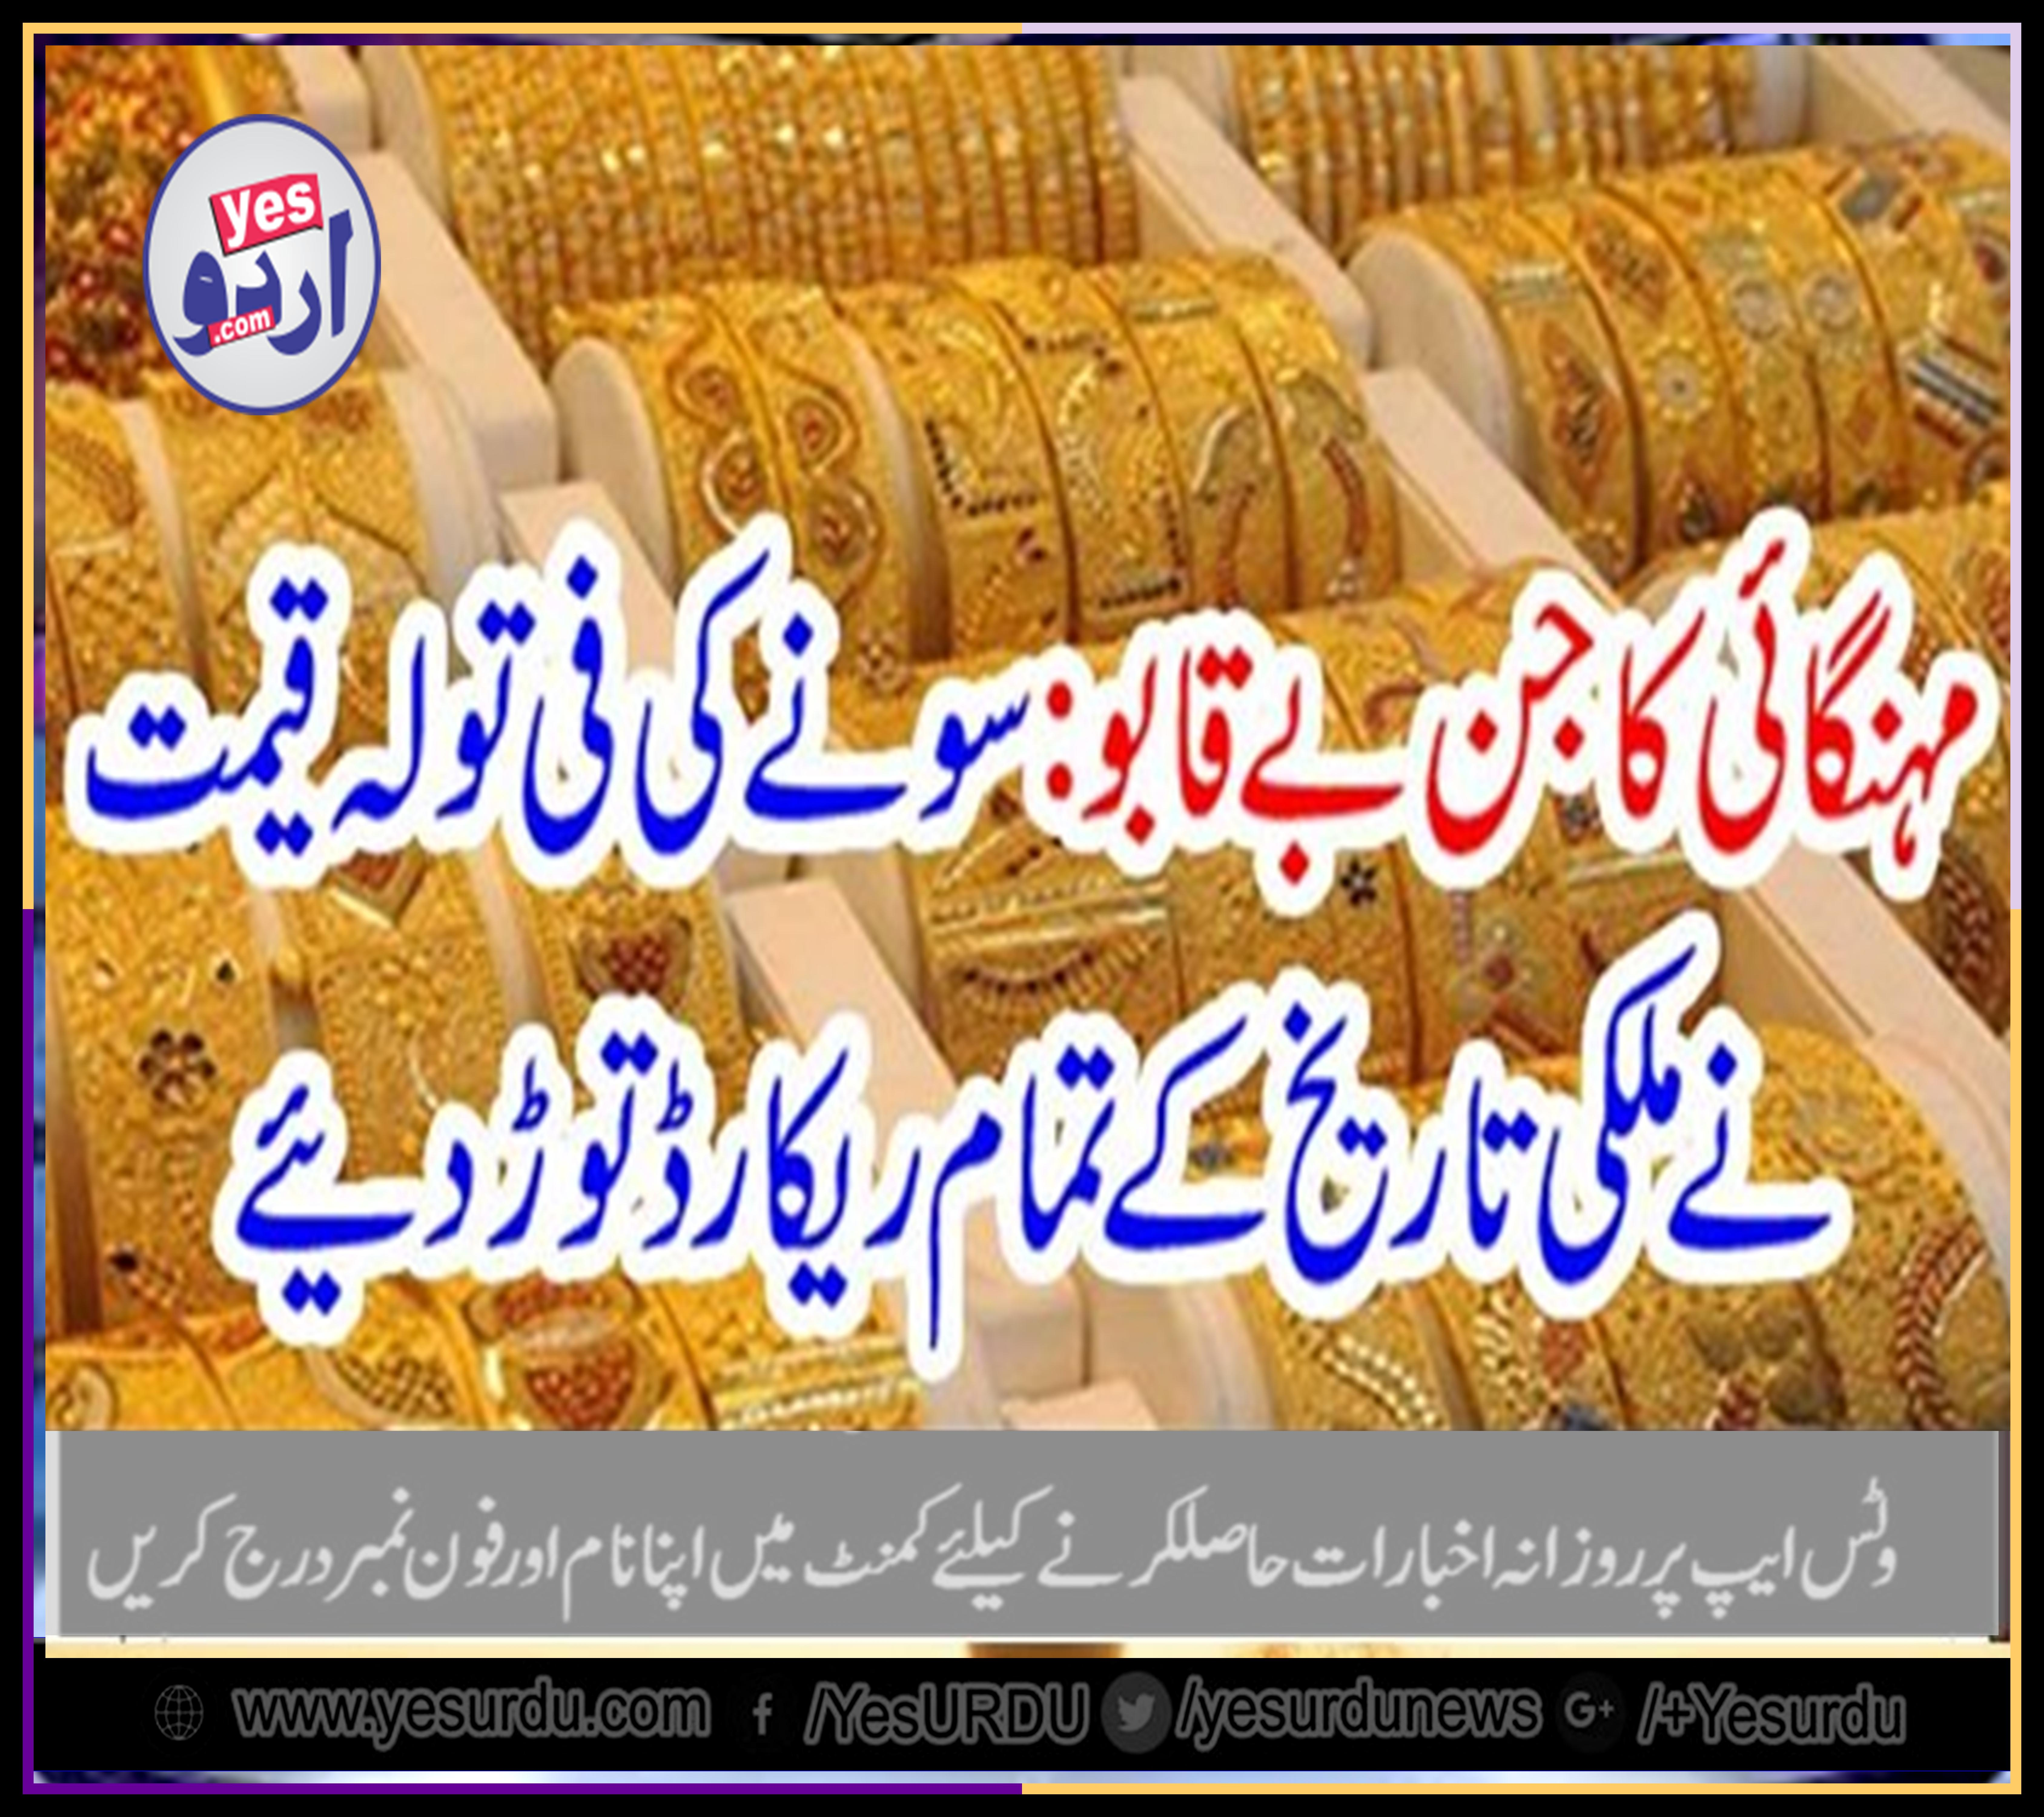 HIKE, IN,PRICES, ON,PEAK, IN, PAKISTAN, GOLD, PRICE, BROKEN, ALL, RECORDS, IN, PAKISTAN